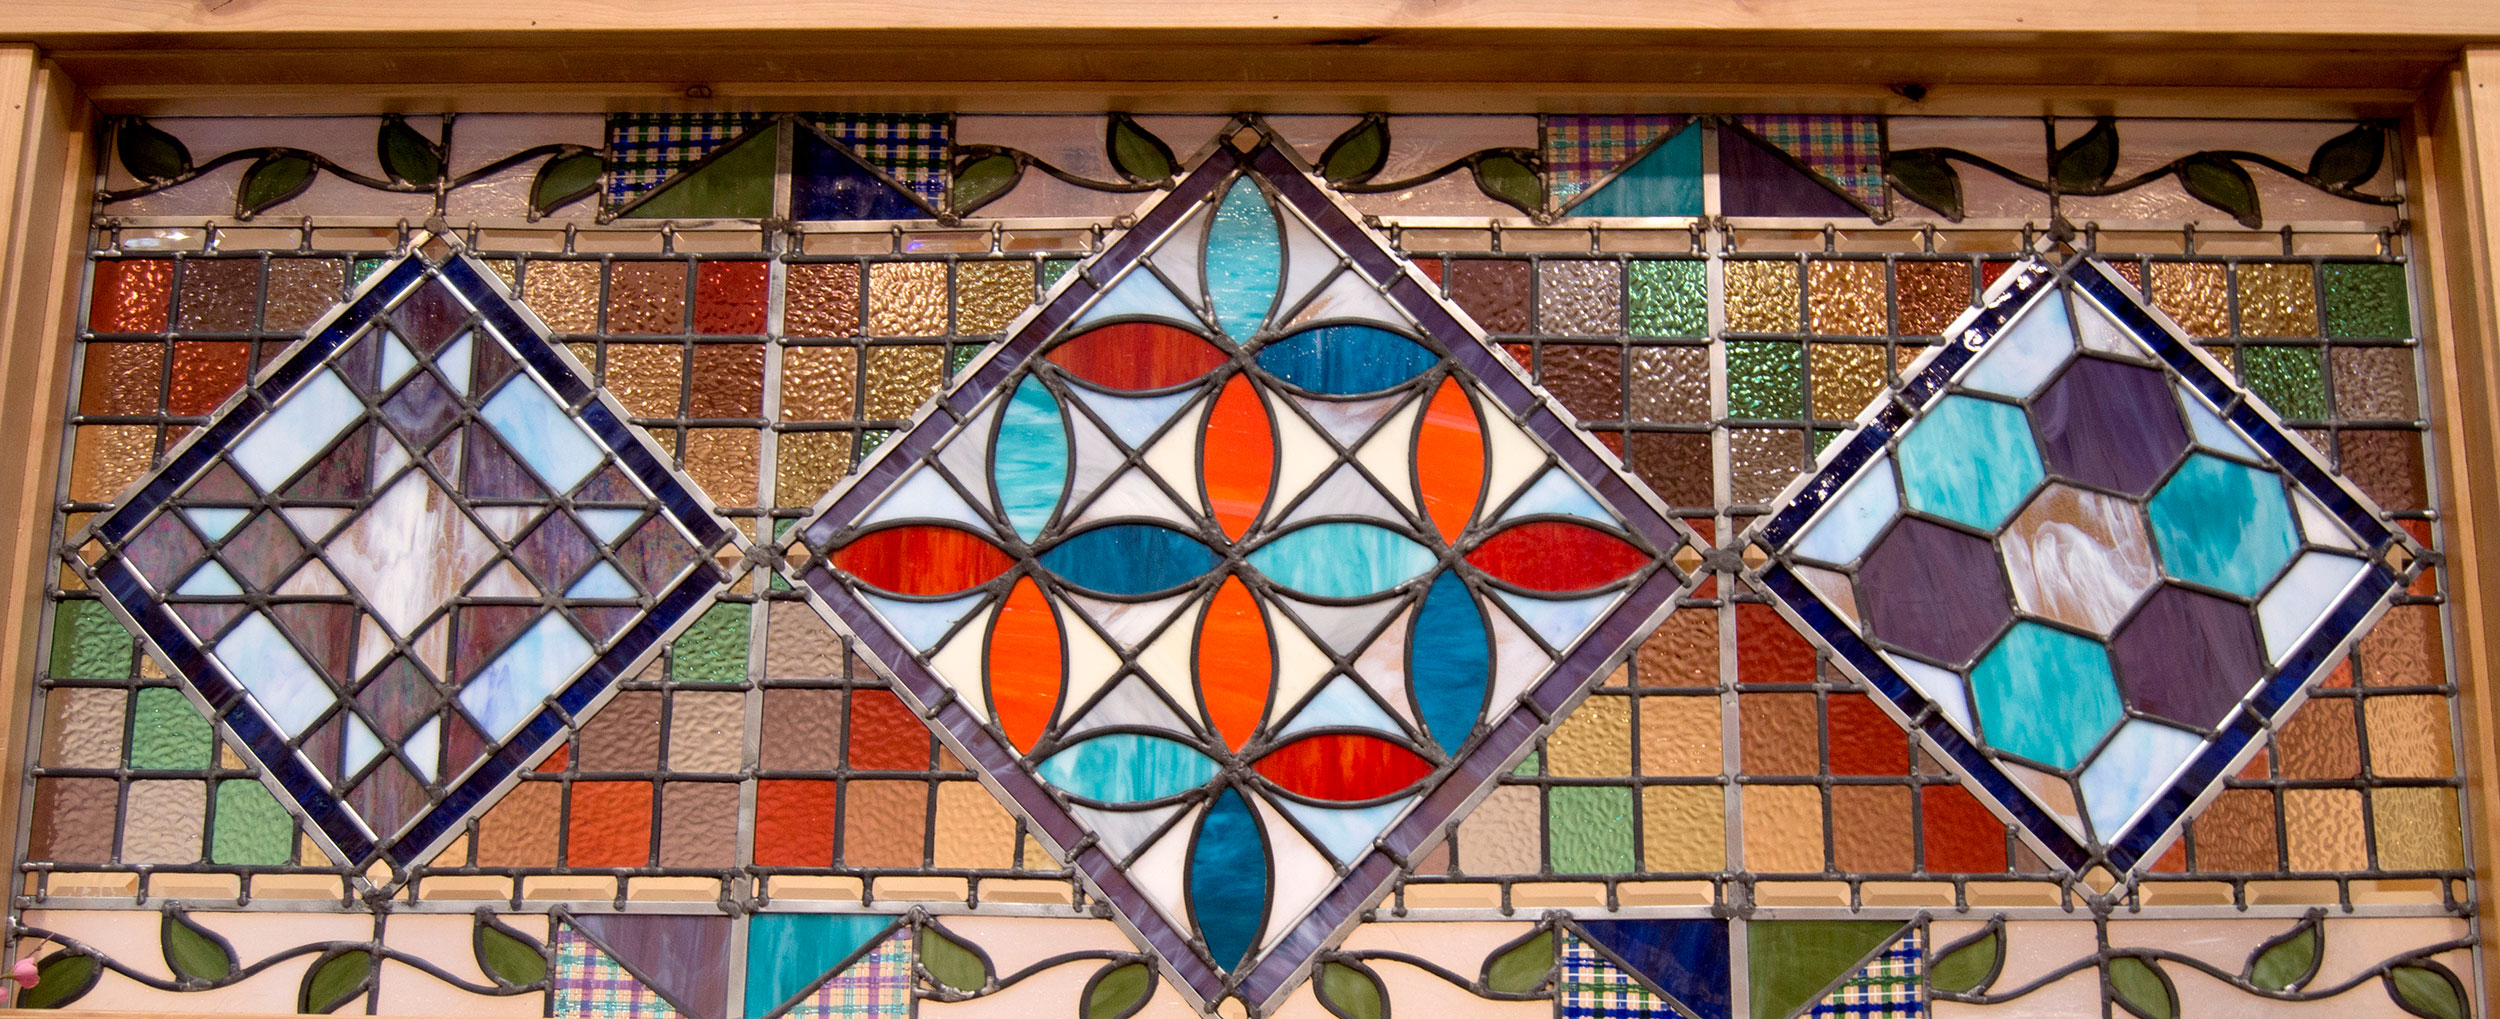 Intro to Leaded Glass (Stained Glass) LIVE with Cheryl Peterson